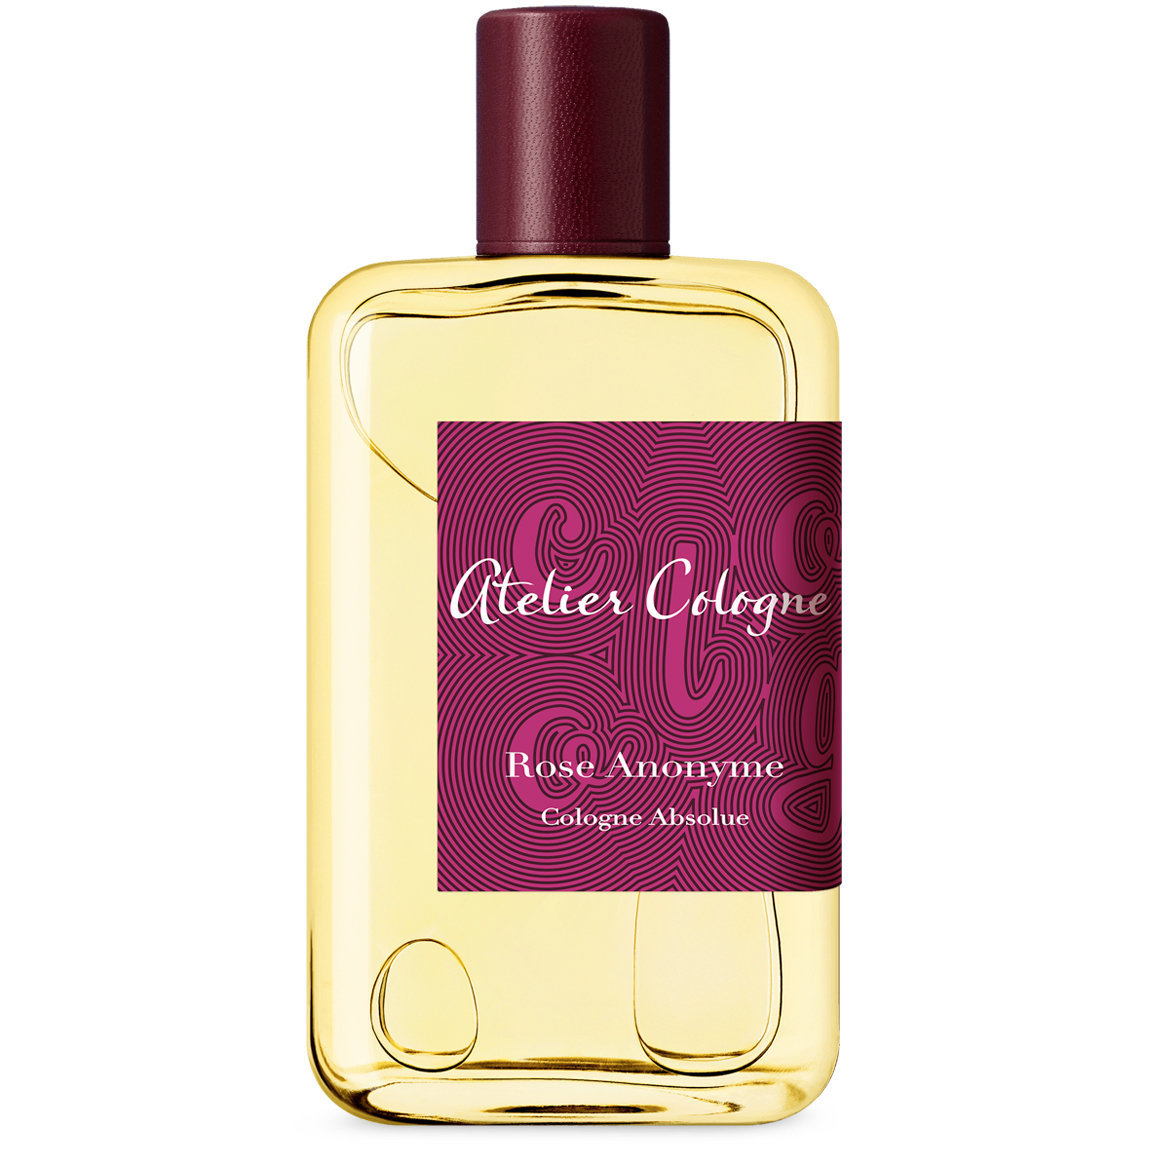 Atelier Cologne Rose Anonyme 200 ml alternative view 1 - product swatch.